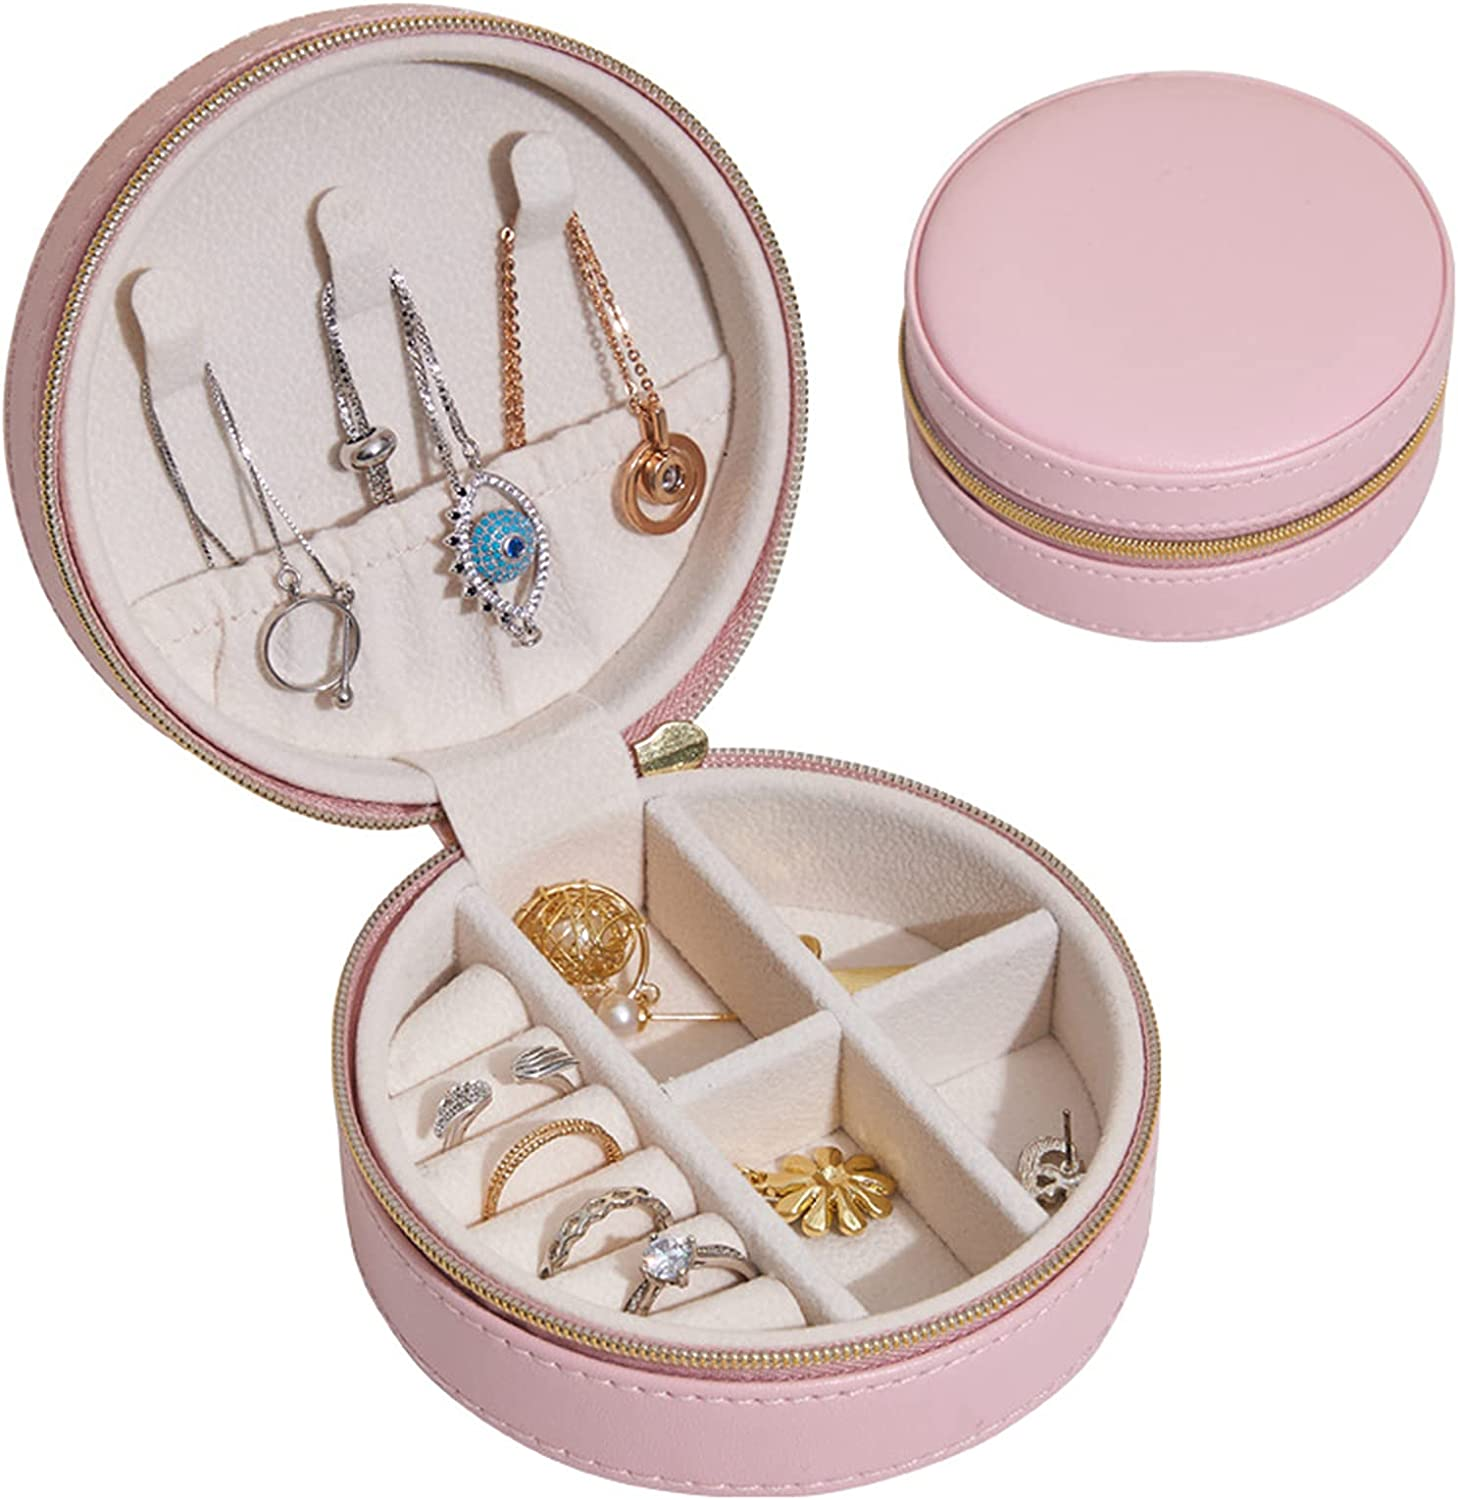 Jewelry Boxes Creative Round lowest Max 52% OFF price Box Necklac Earring Storage